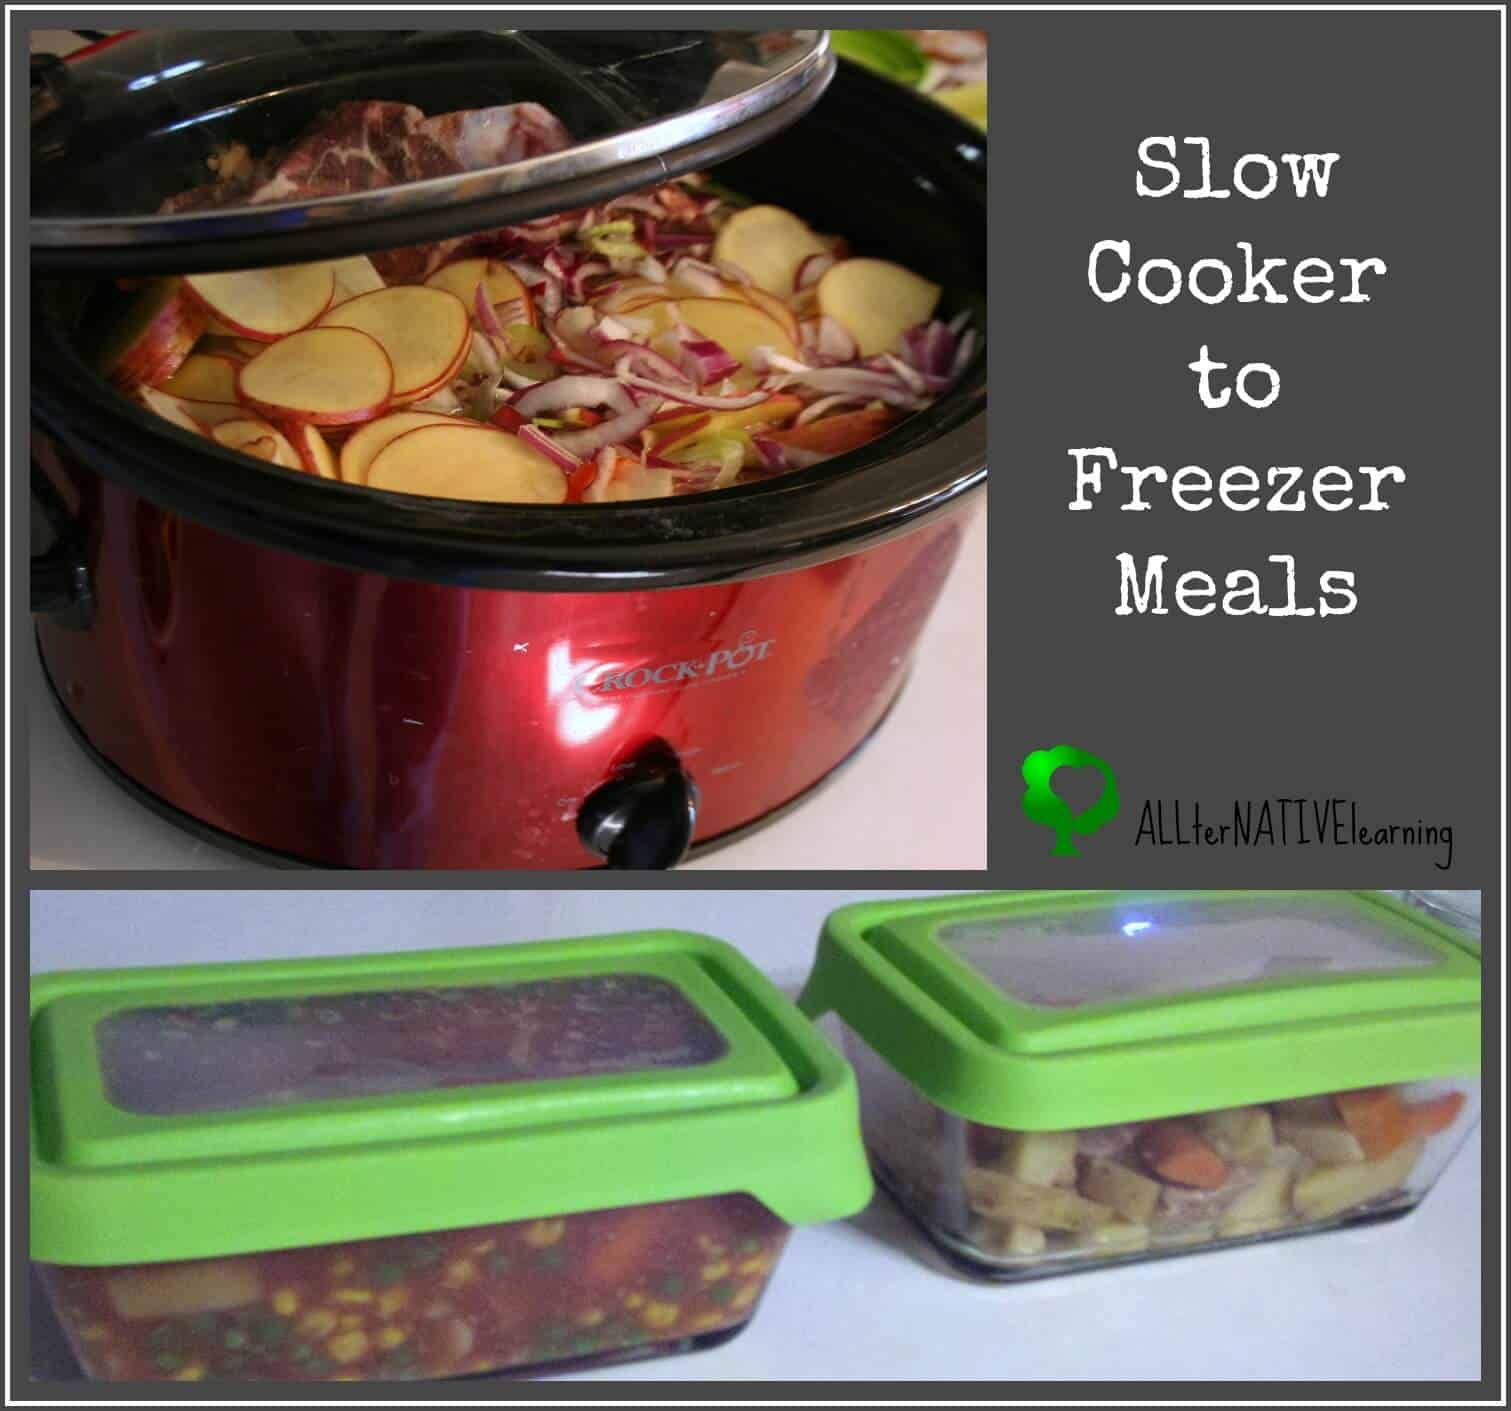 Defrosting Slow Cooker Meals: If you take it out of the freezer the night before you want to cook it and put it in the fridge, it should defrost in time. You can, instead, simply cook from frozen in a microwave – just empty the slow cooker meal into a microwave-proof dish, cover it and microwave it on defrost, or a low/low-medium setting for about minutes (depending on how much you're defrosting), giving it a .